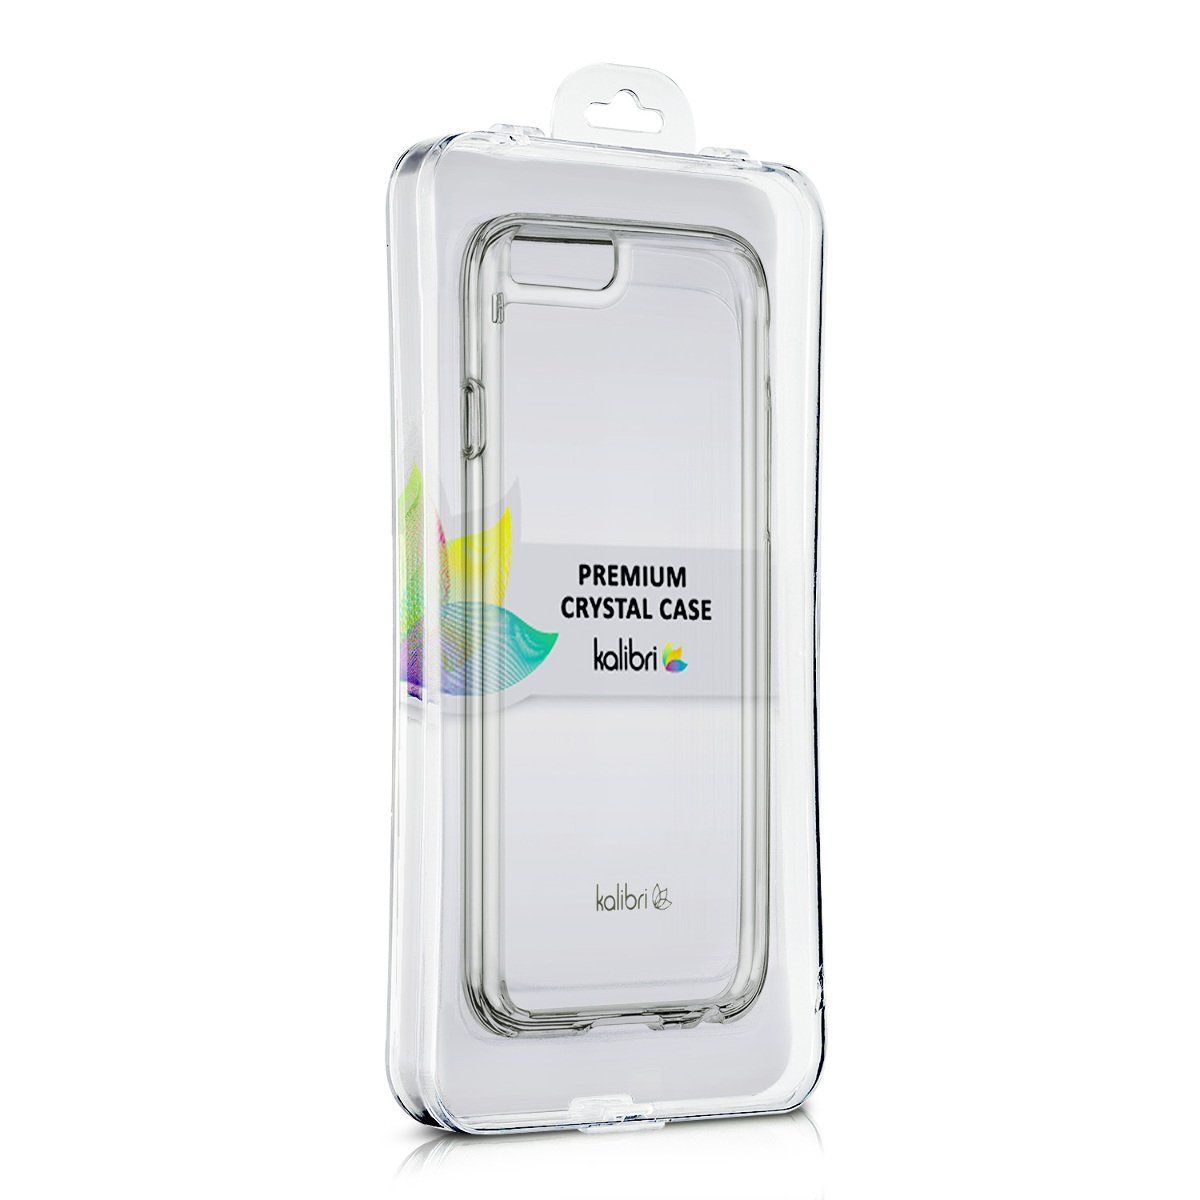 Kalibri crystal case for apple iphone 6 6s